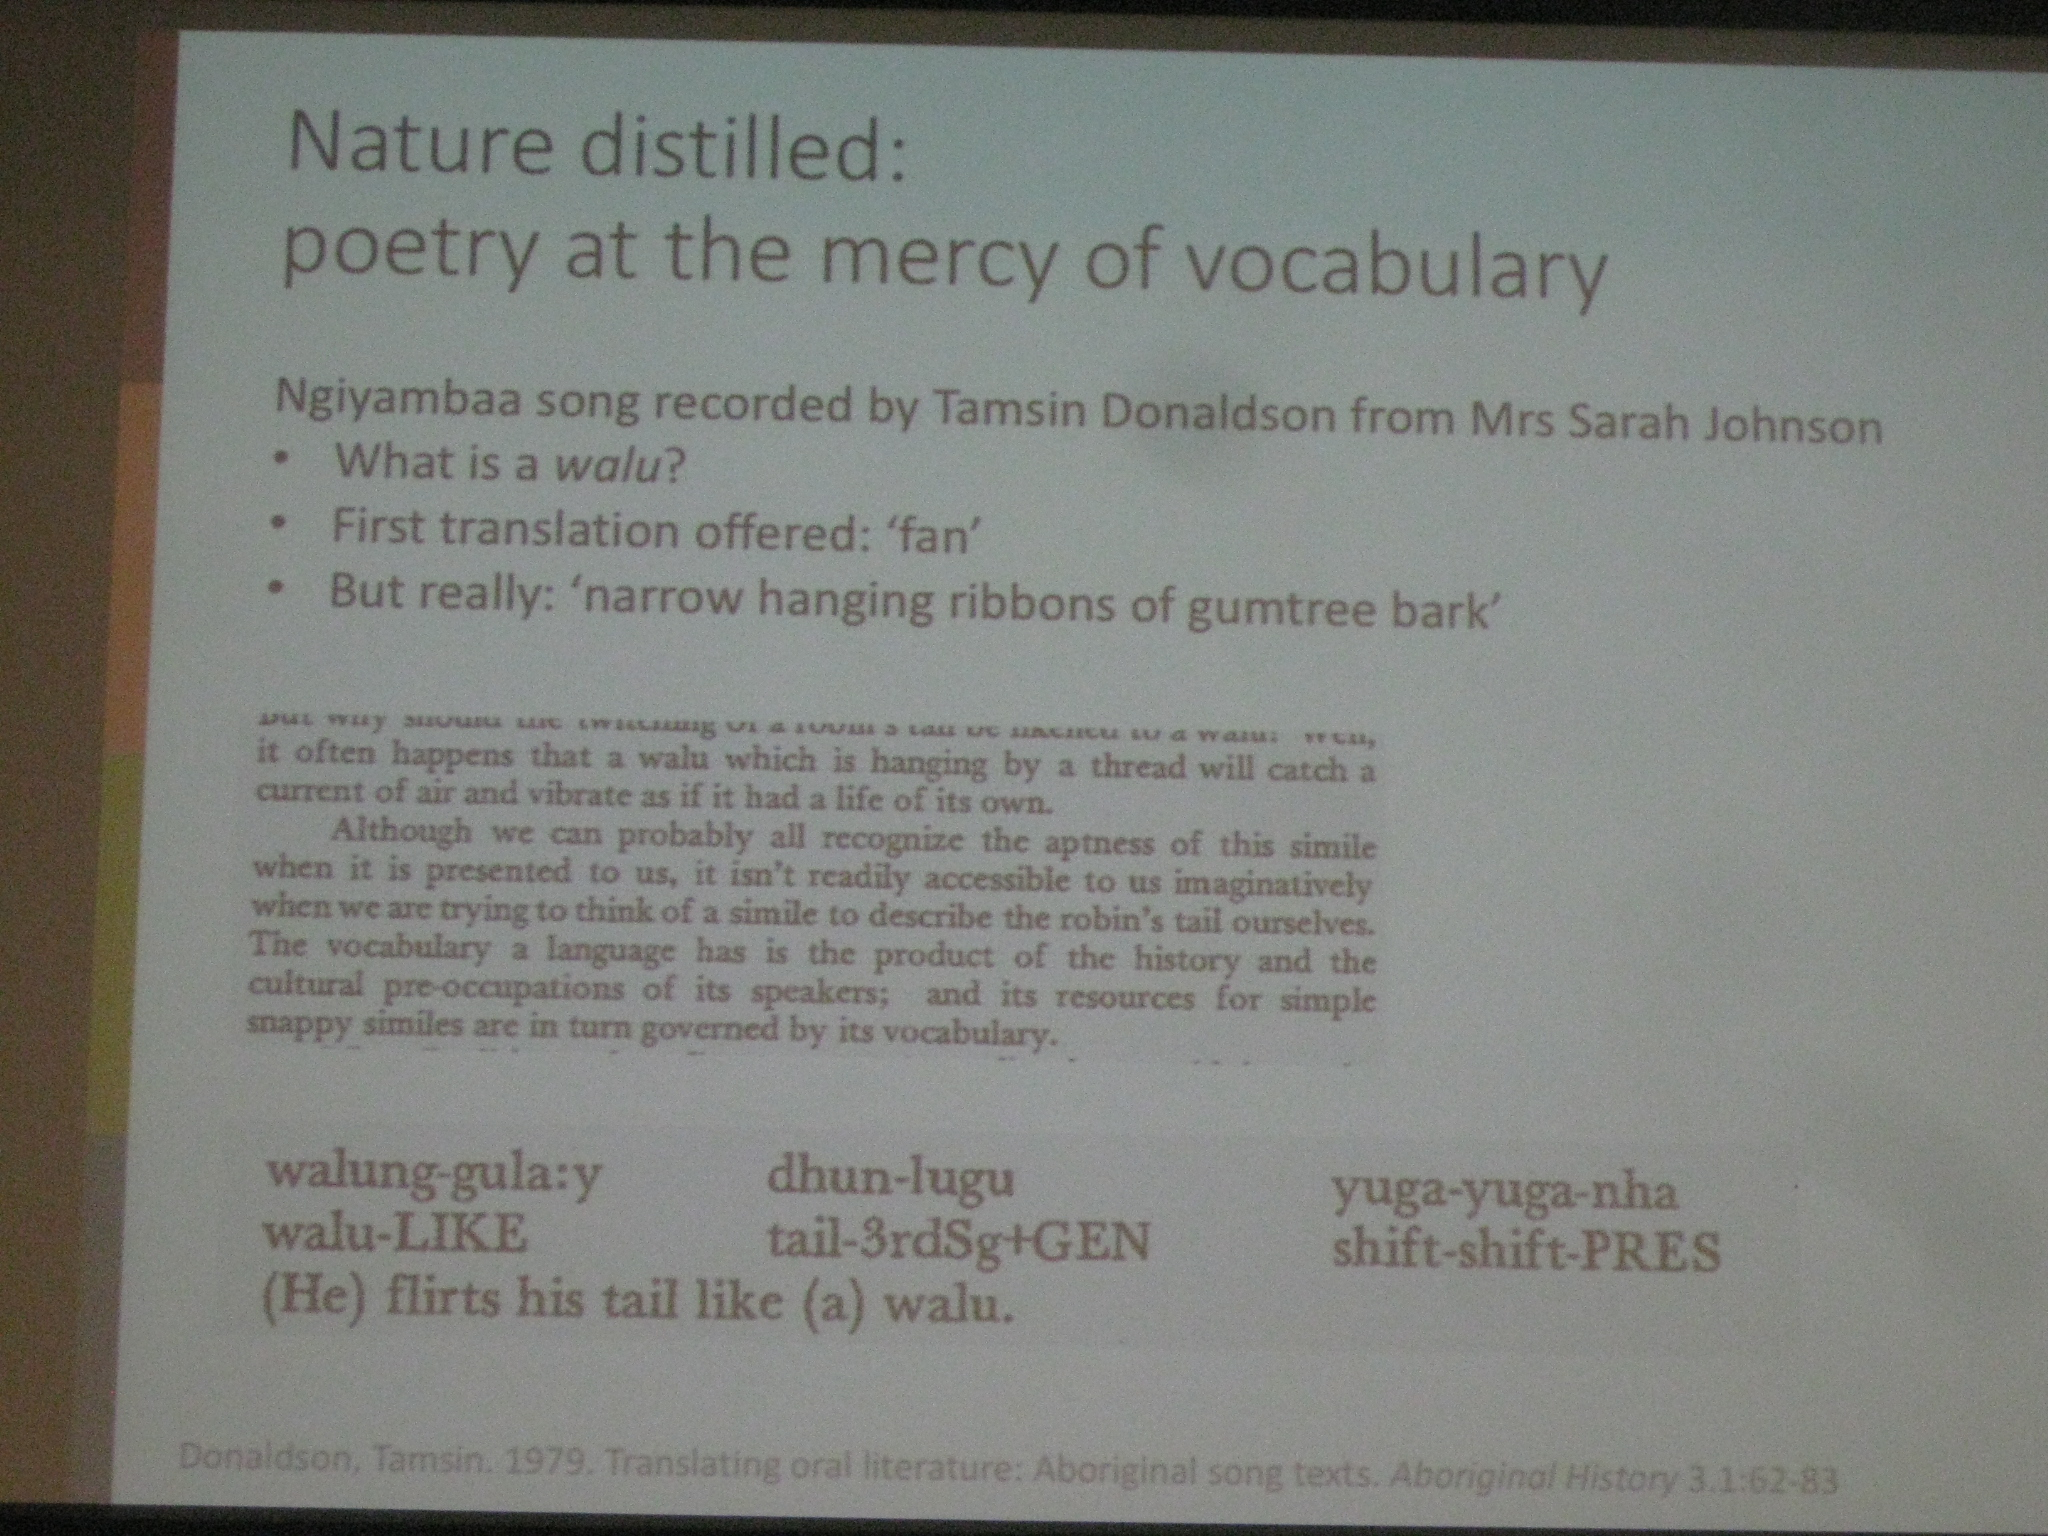 Waving to the other side: language of poetry in indigenous Australian song Nick Evans University of Melbourne 2018 nature distilled ngiyambaa song walunggula dhunlugu yugayuganha